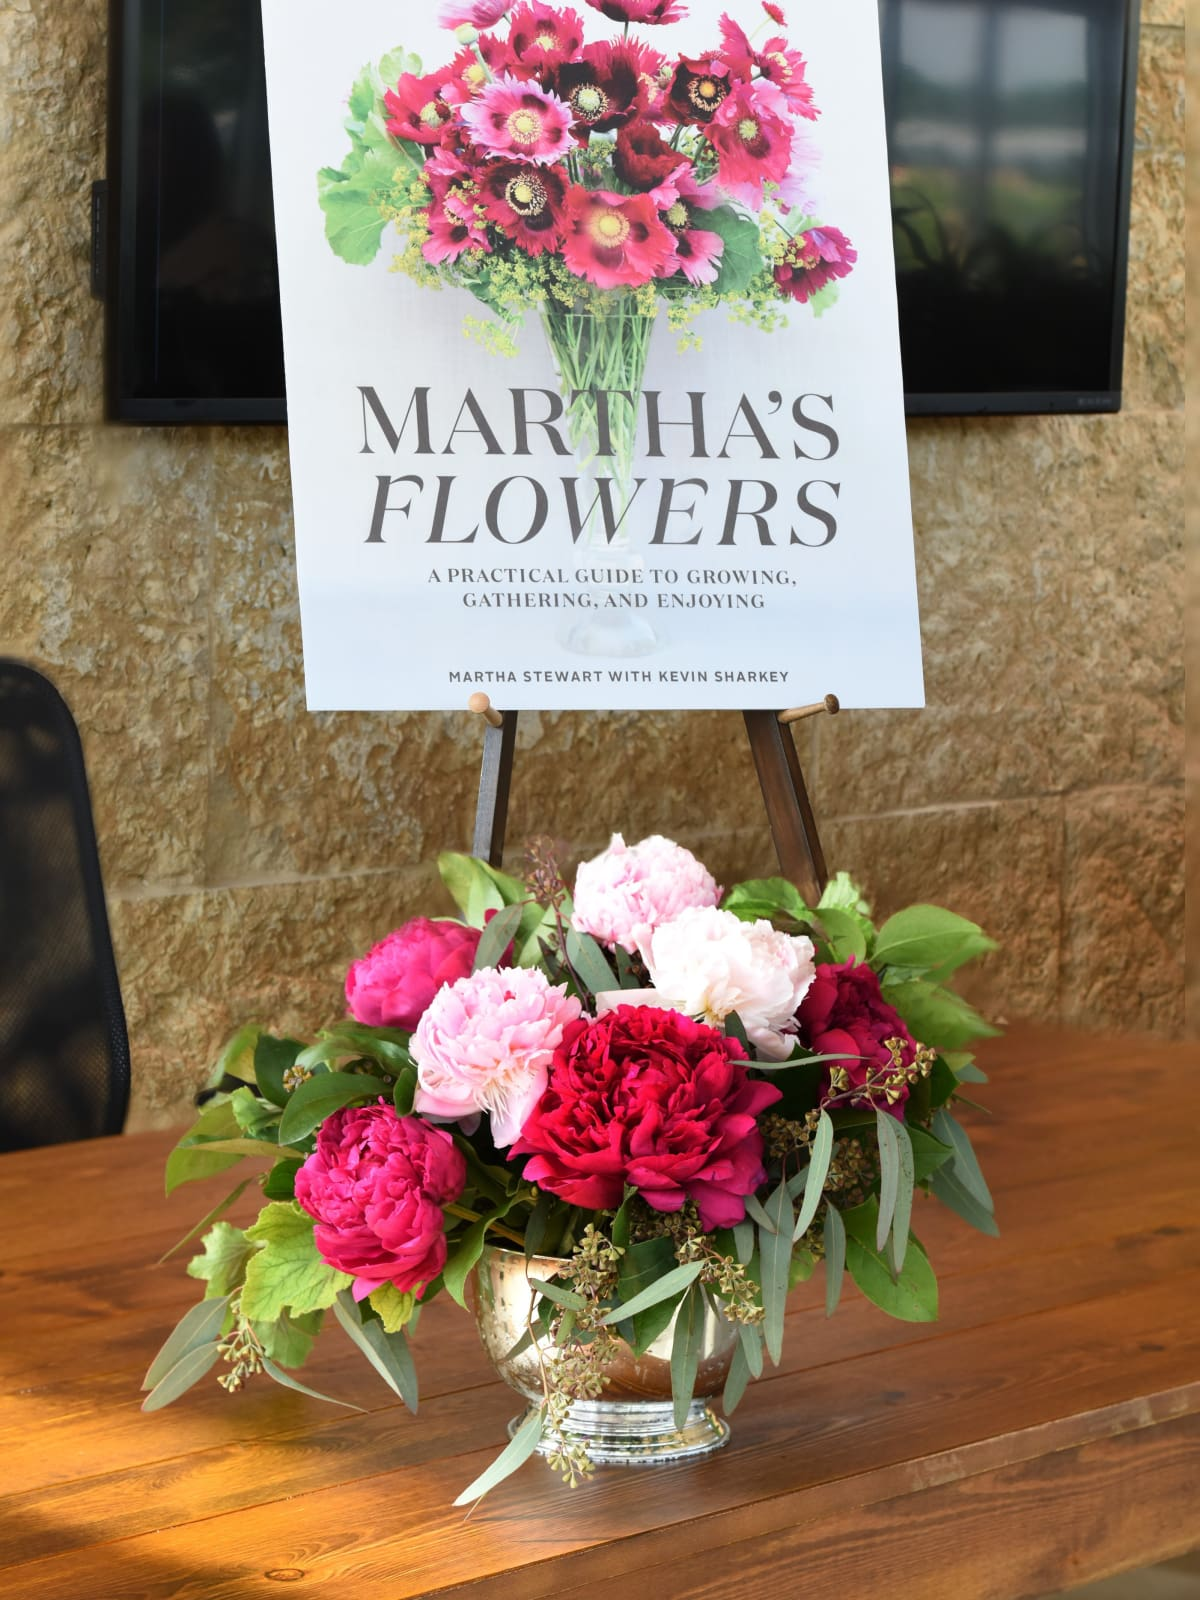 Martha Stewart event at Dallas Arboretum 2018